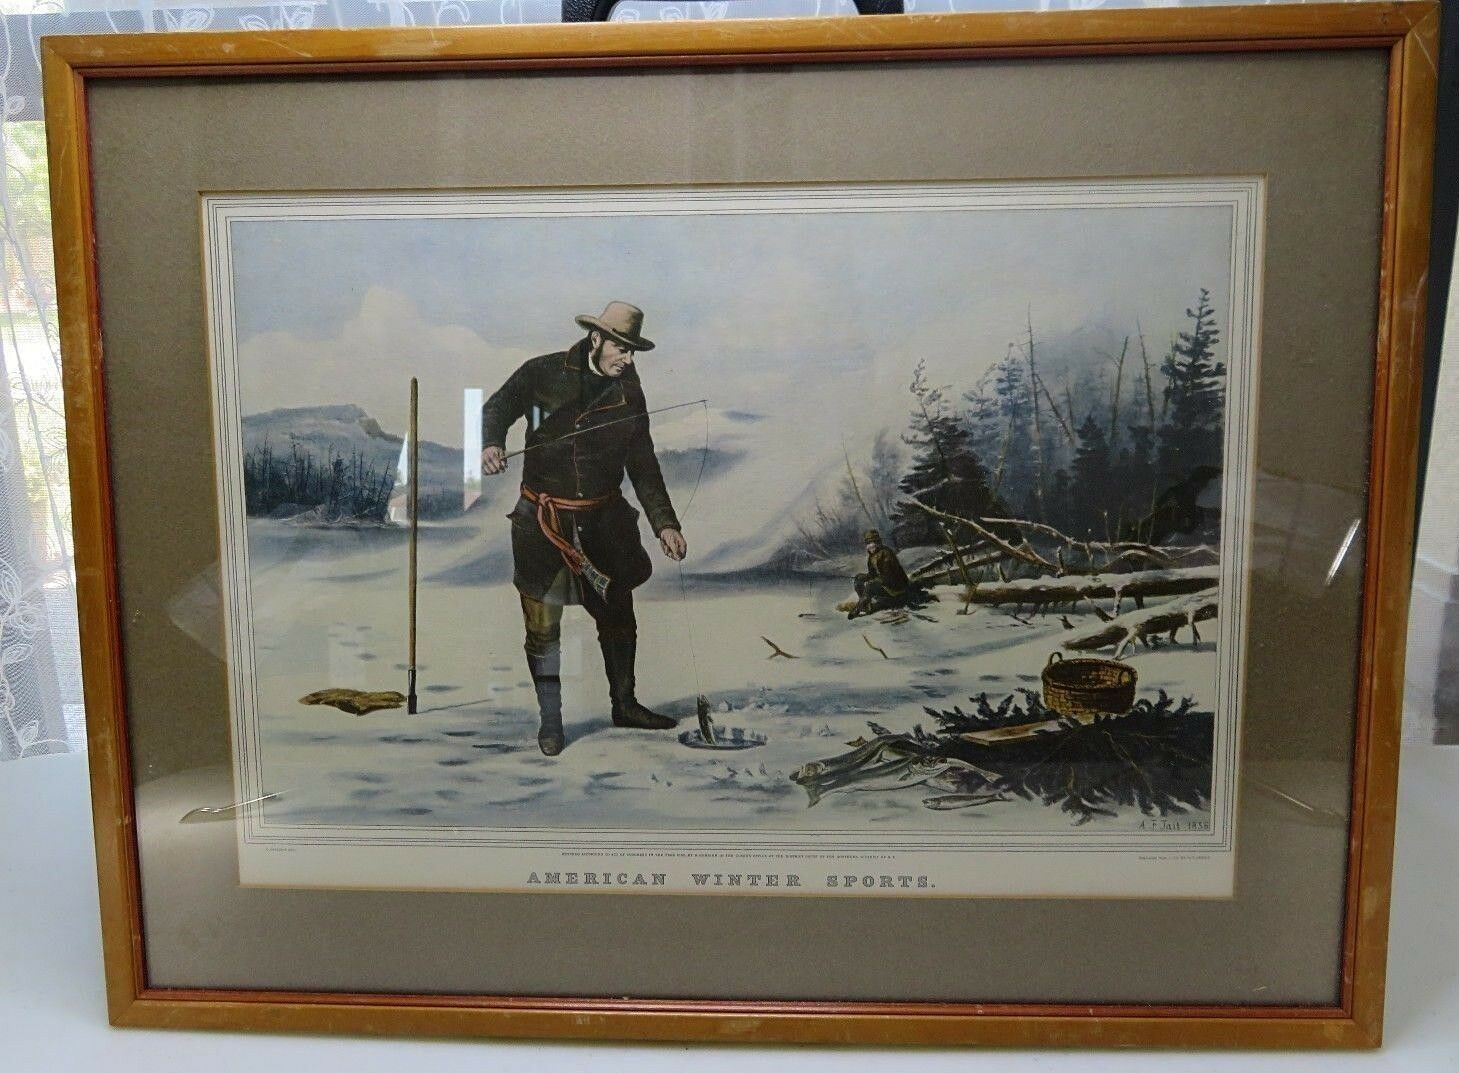 Primary image for Mid century American Winter Sports print framed glass reprinted from 1856